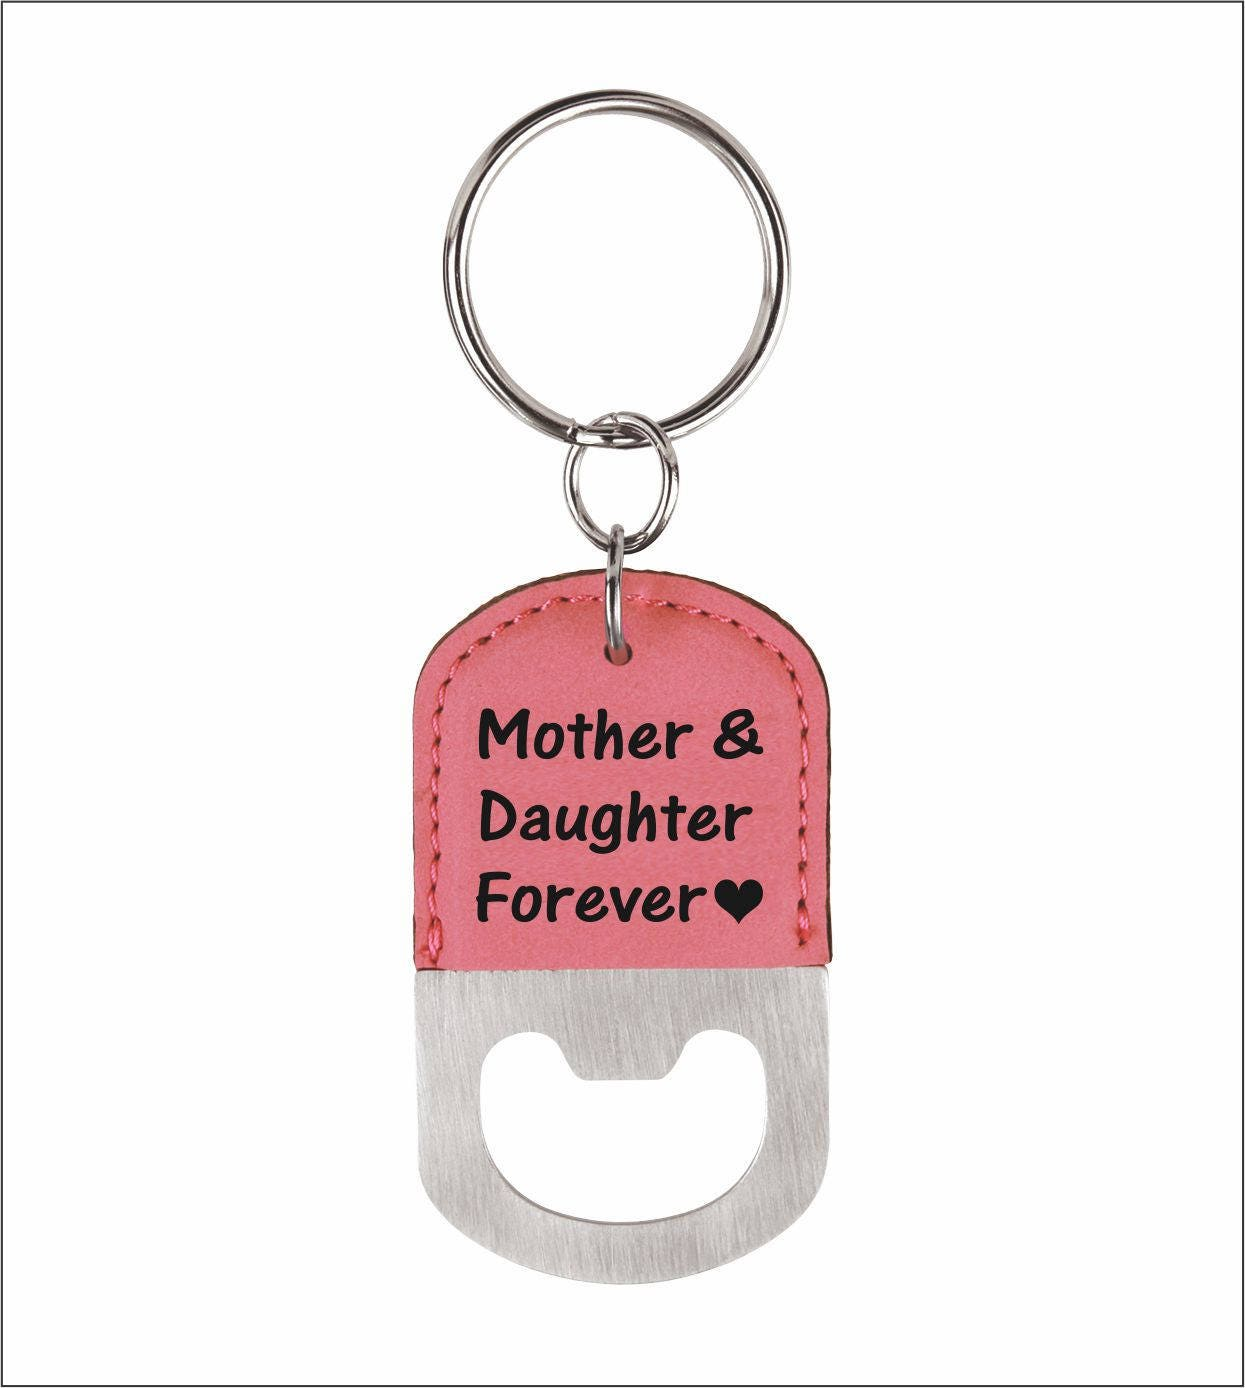 Mother and Daughter Forever Key chain Gift for Mom from